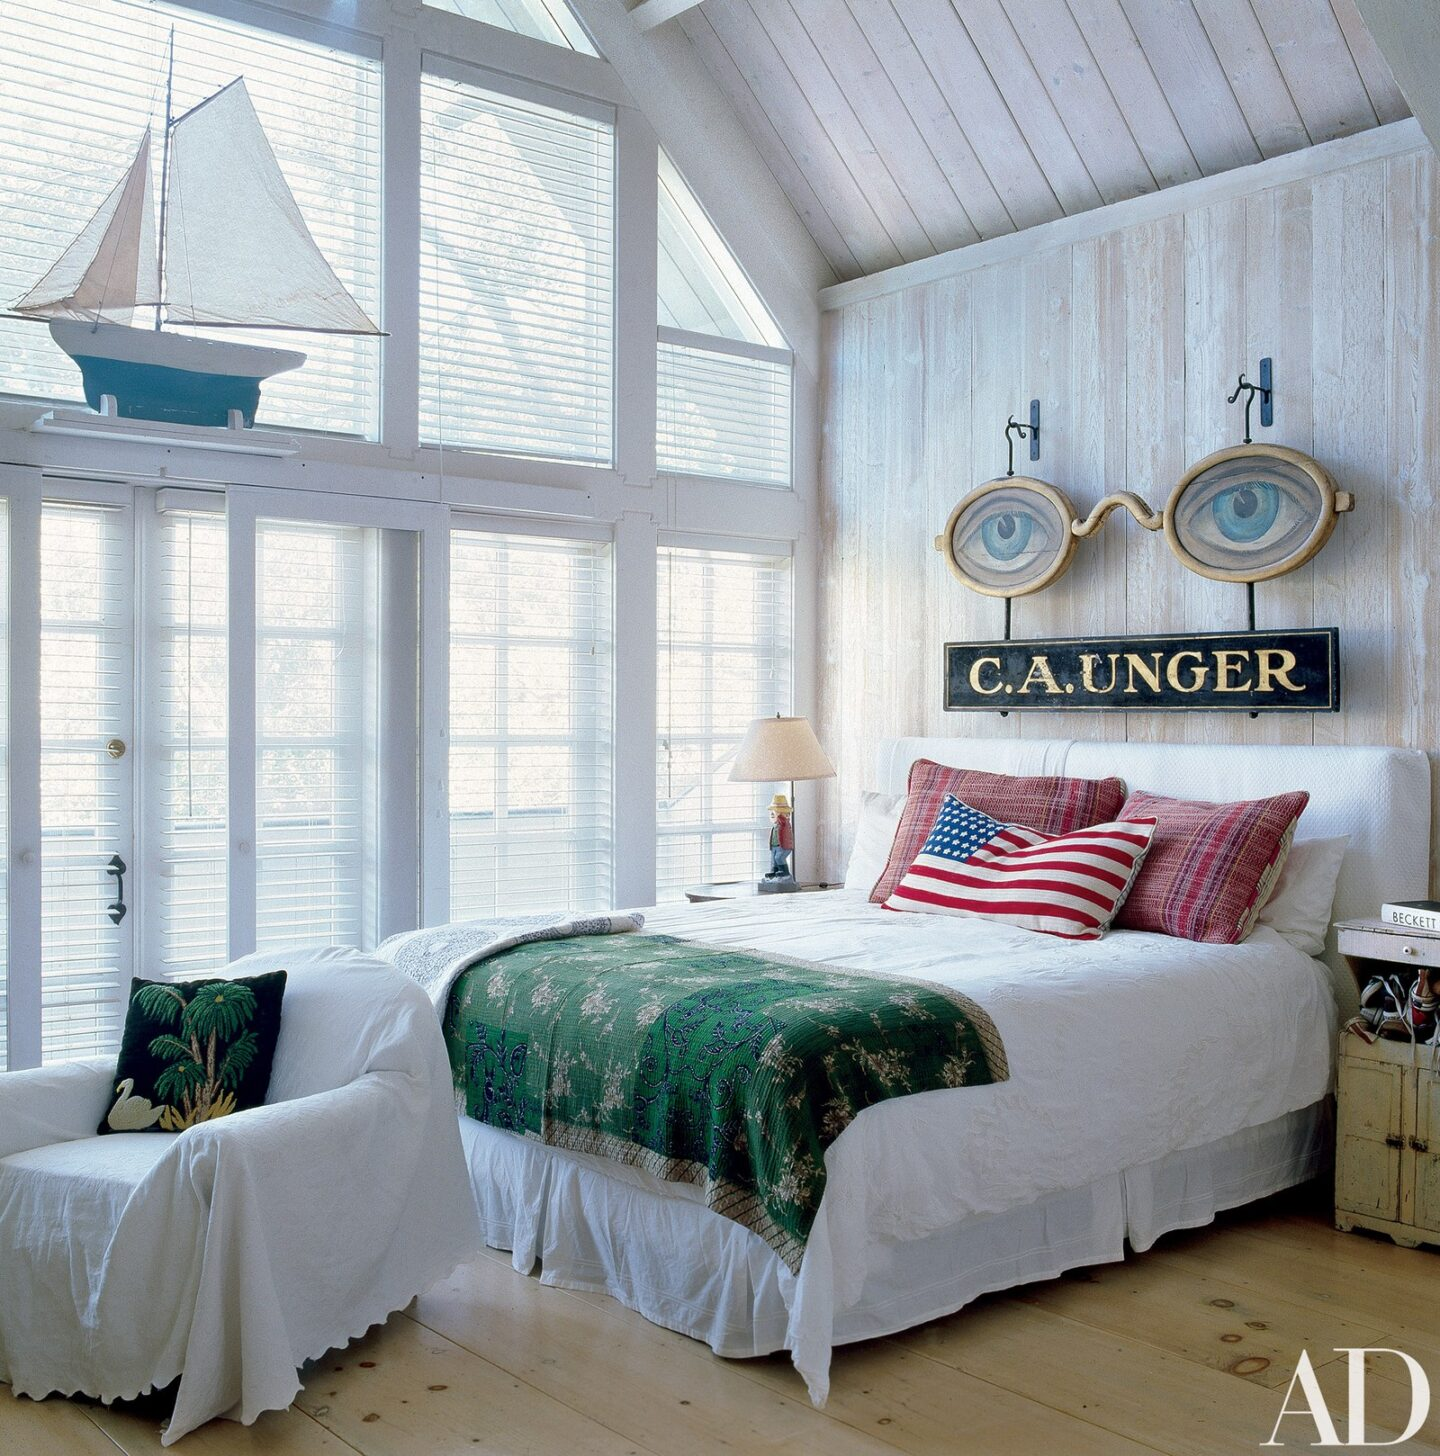 Lofty farmhouse rustic bedroom with white planked walls in the LA home of Malcolm McDowell. Photo by Miguel Flores-Vianna for Architectural Digest. Timeless Tastemaker Trifecta: Lisa Fine, Tom Scheerer and Miguel Flores-Vianna...in case you admire sophisticated design.